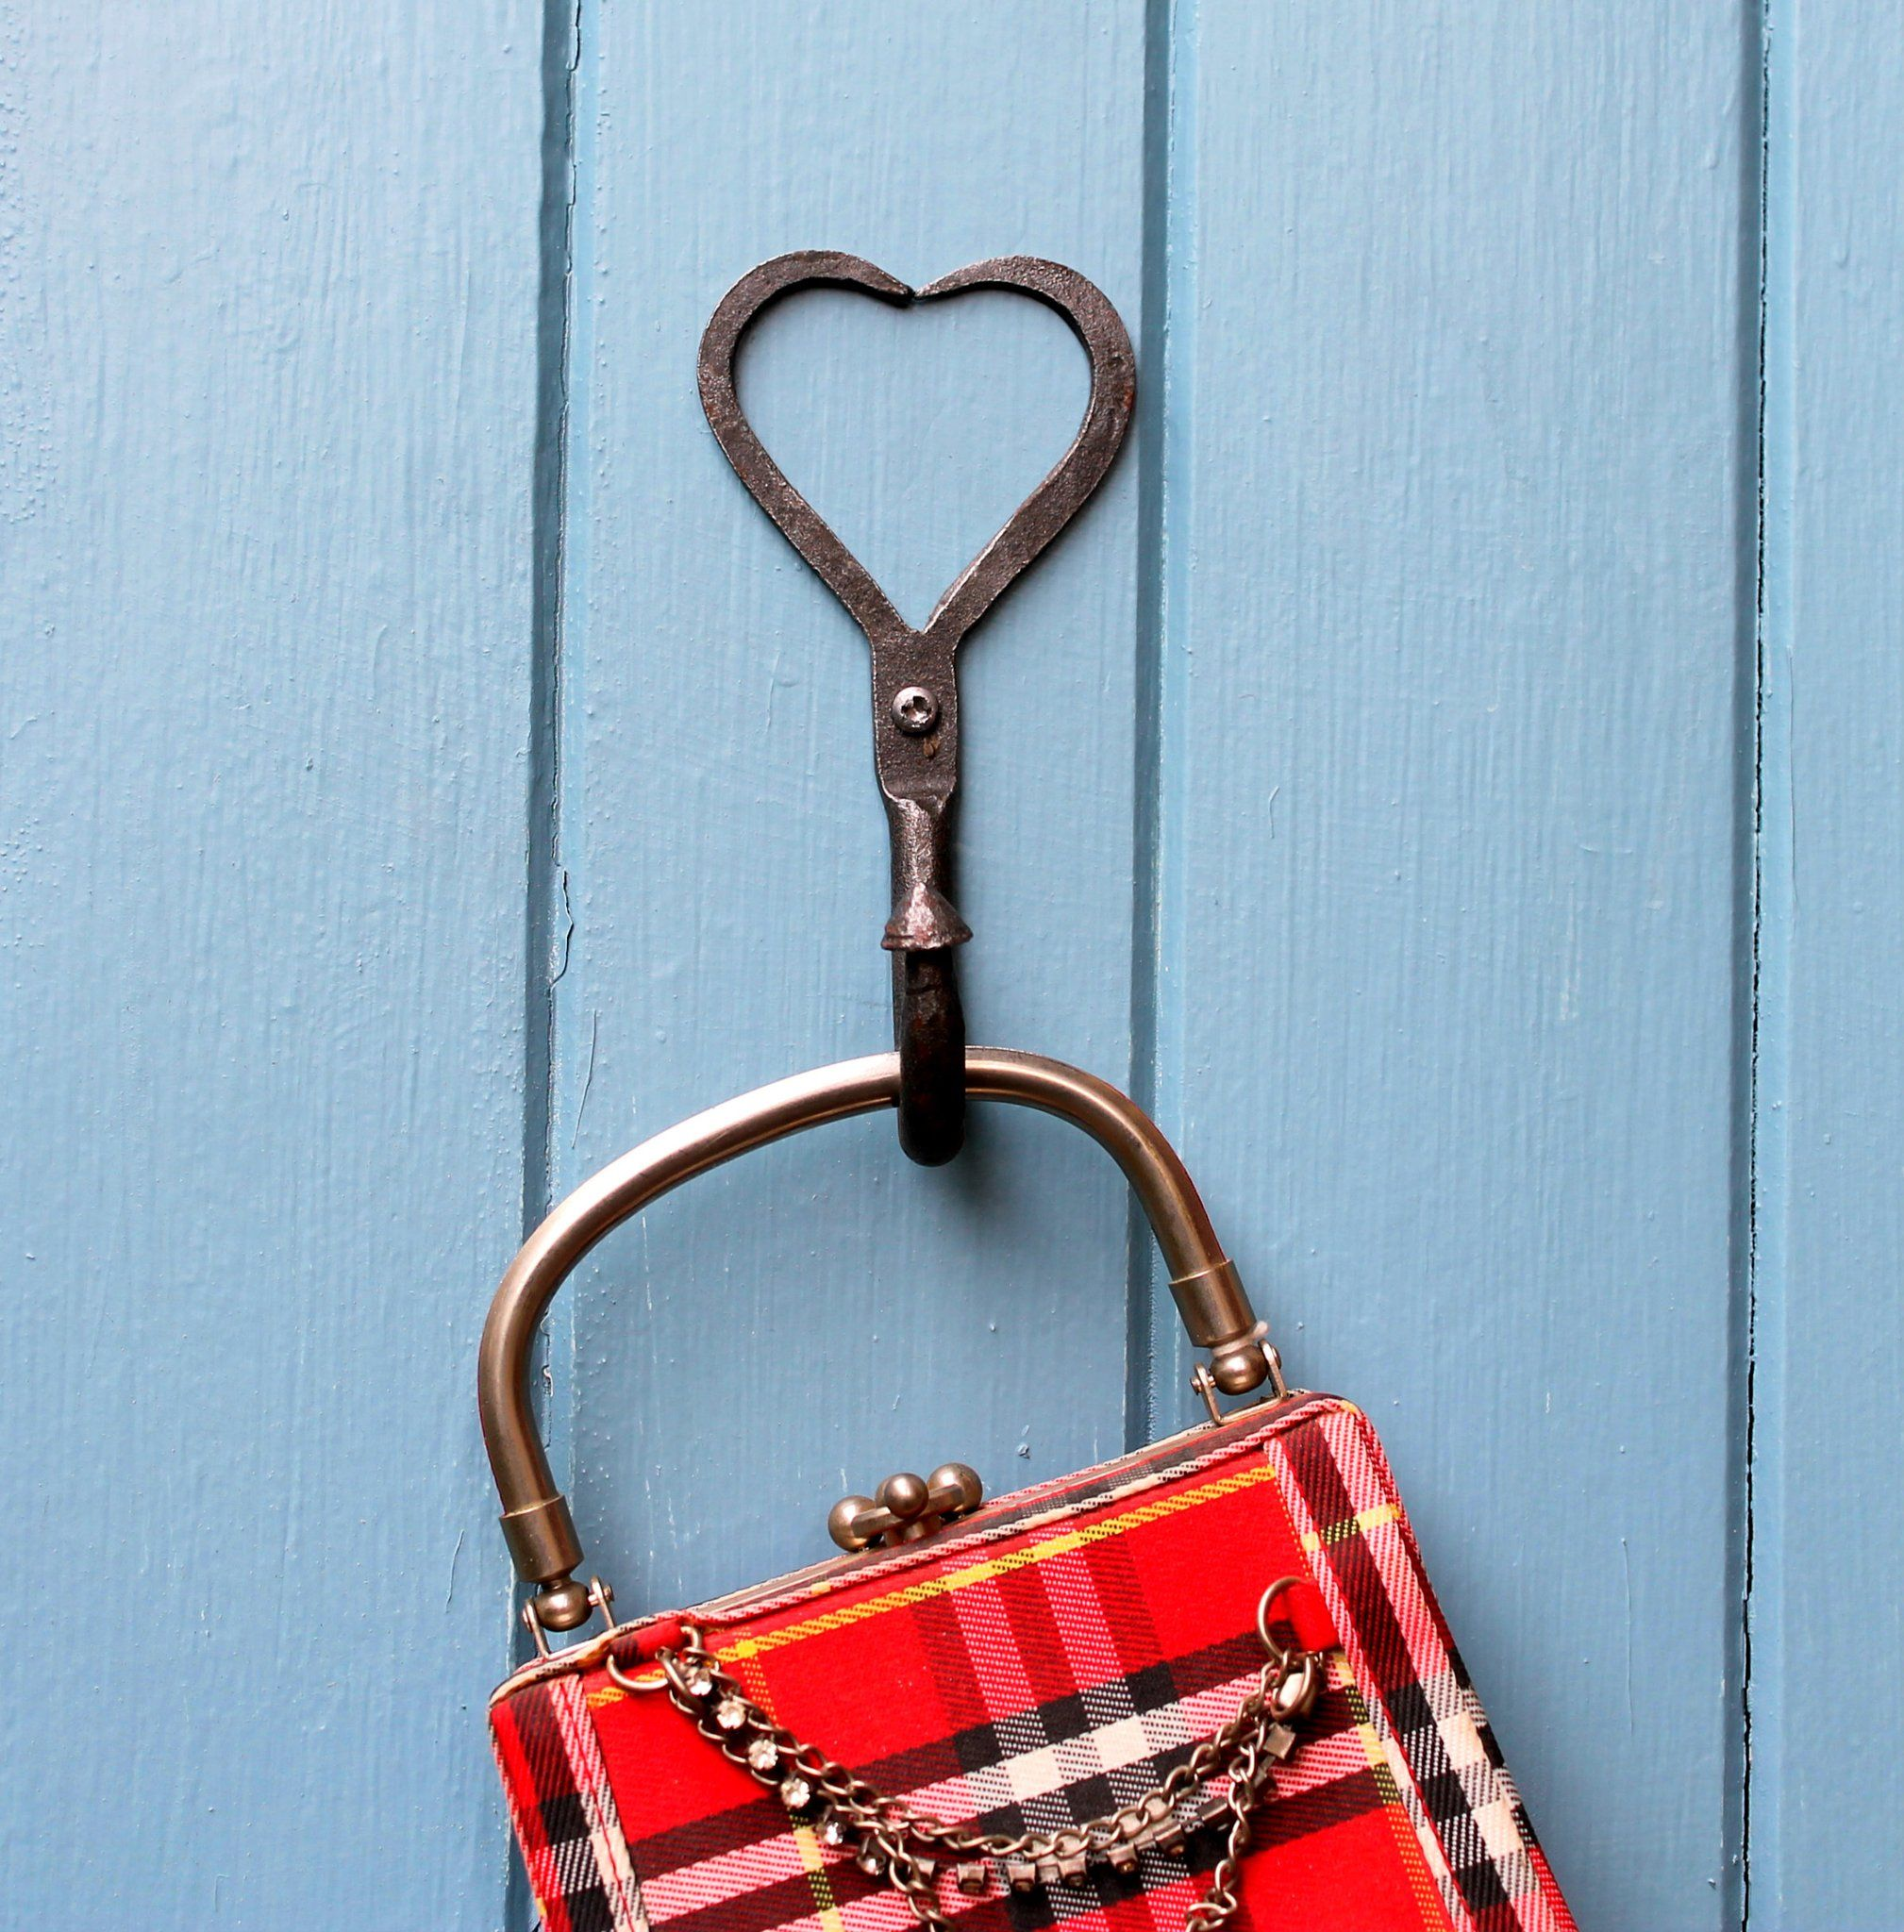 Heart Shaped Wrought Iron Coat Hook Coat Hooks Heart Shapes